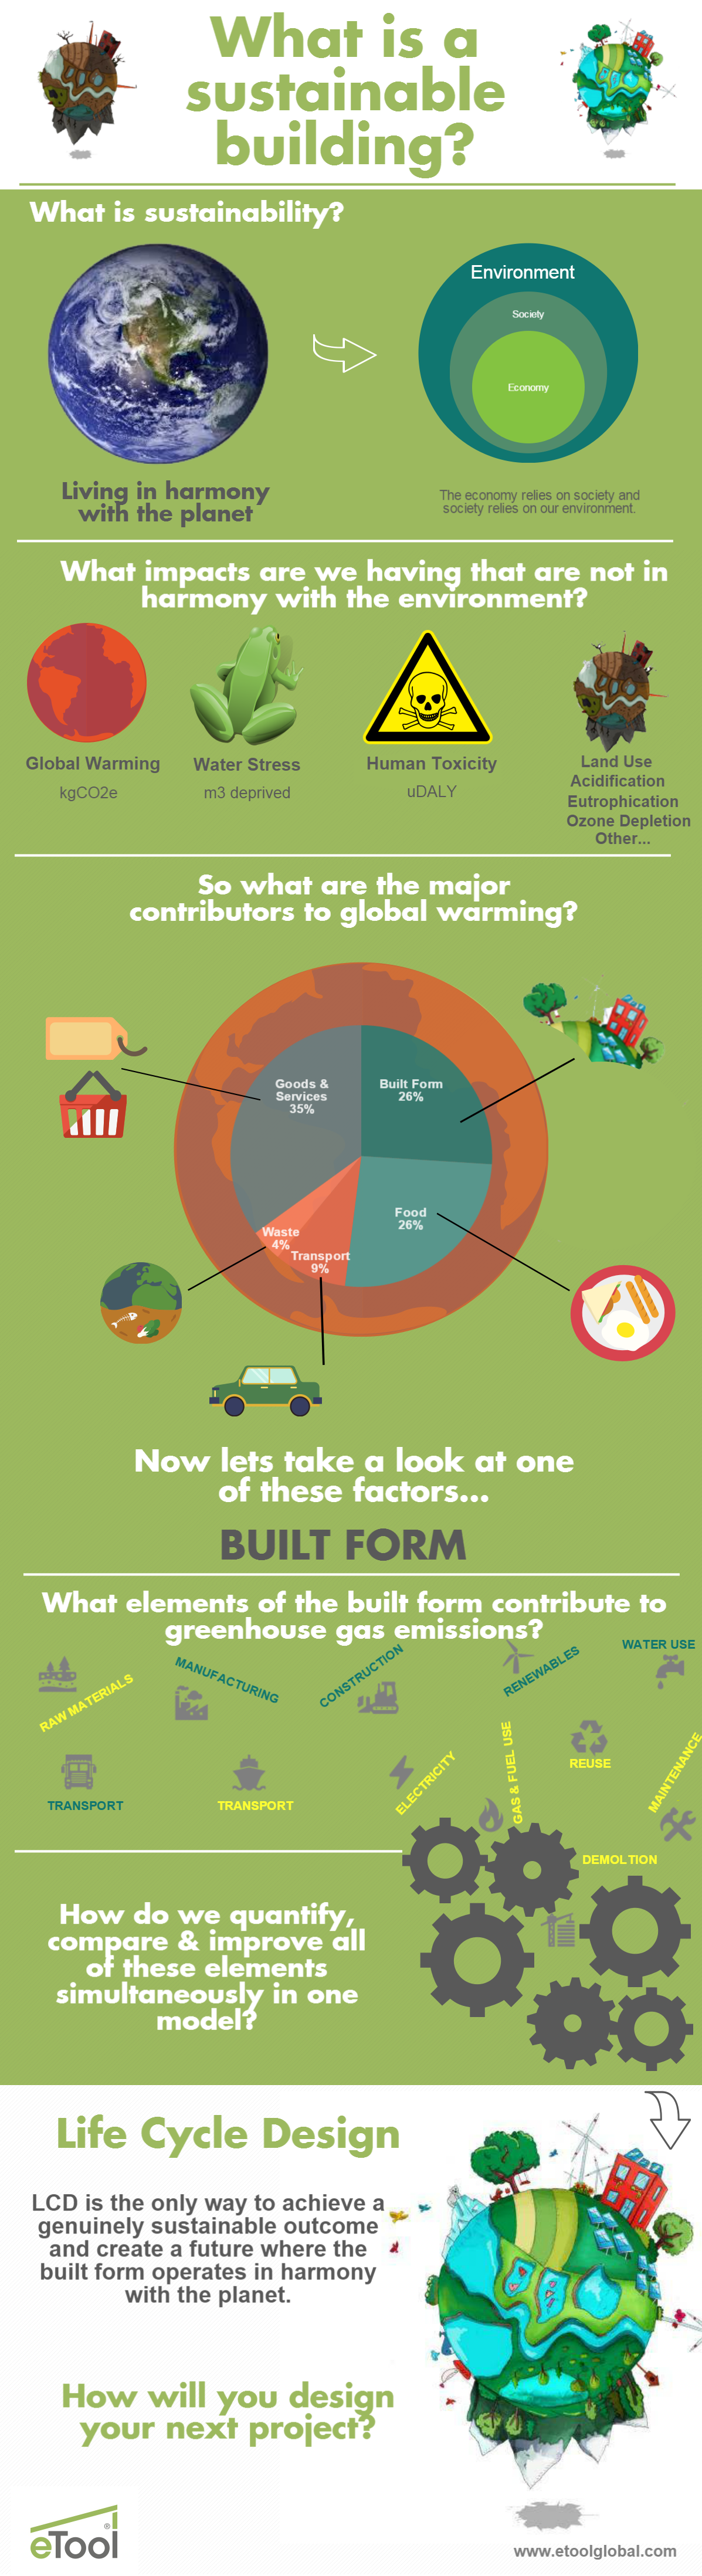 Life Cycle Design Infographic1